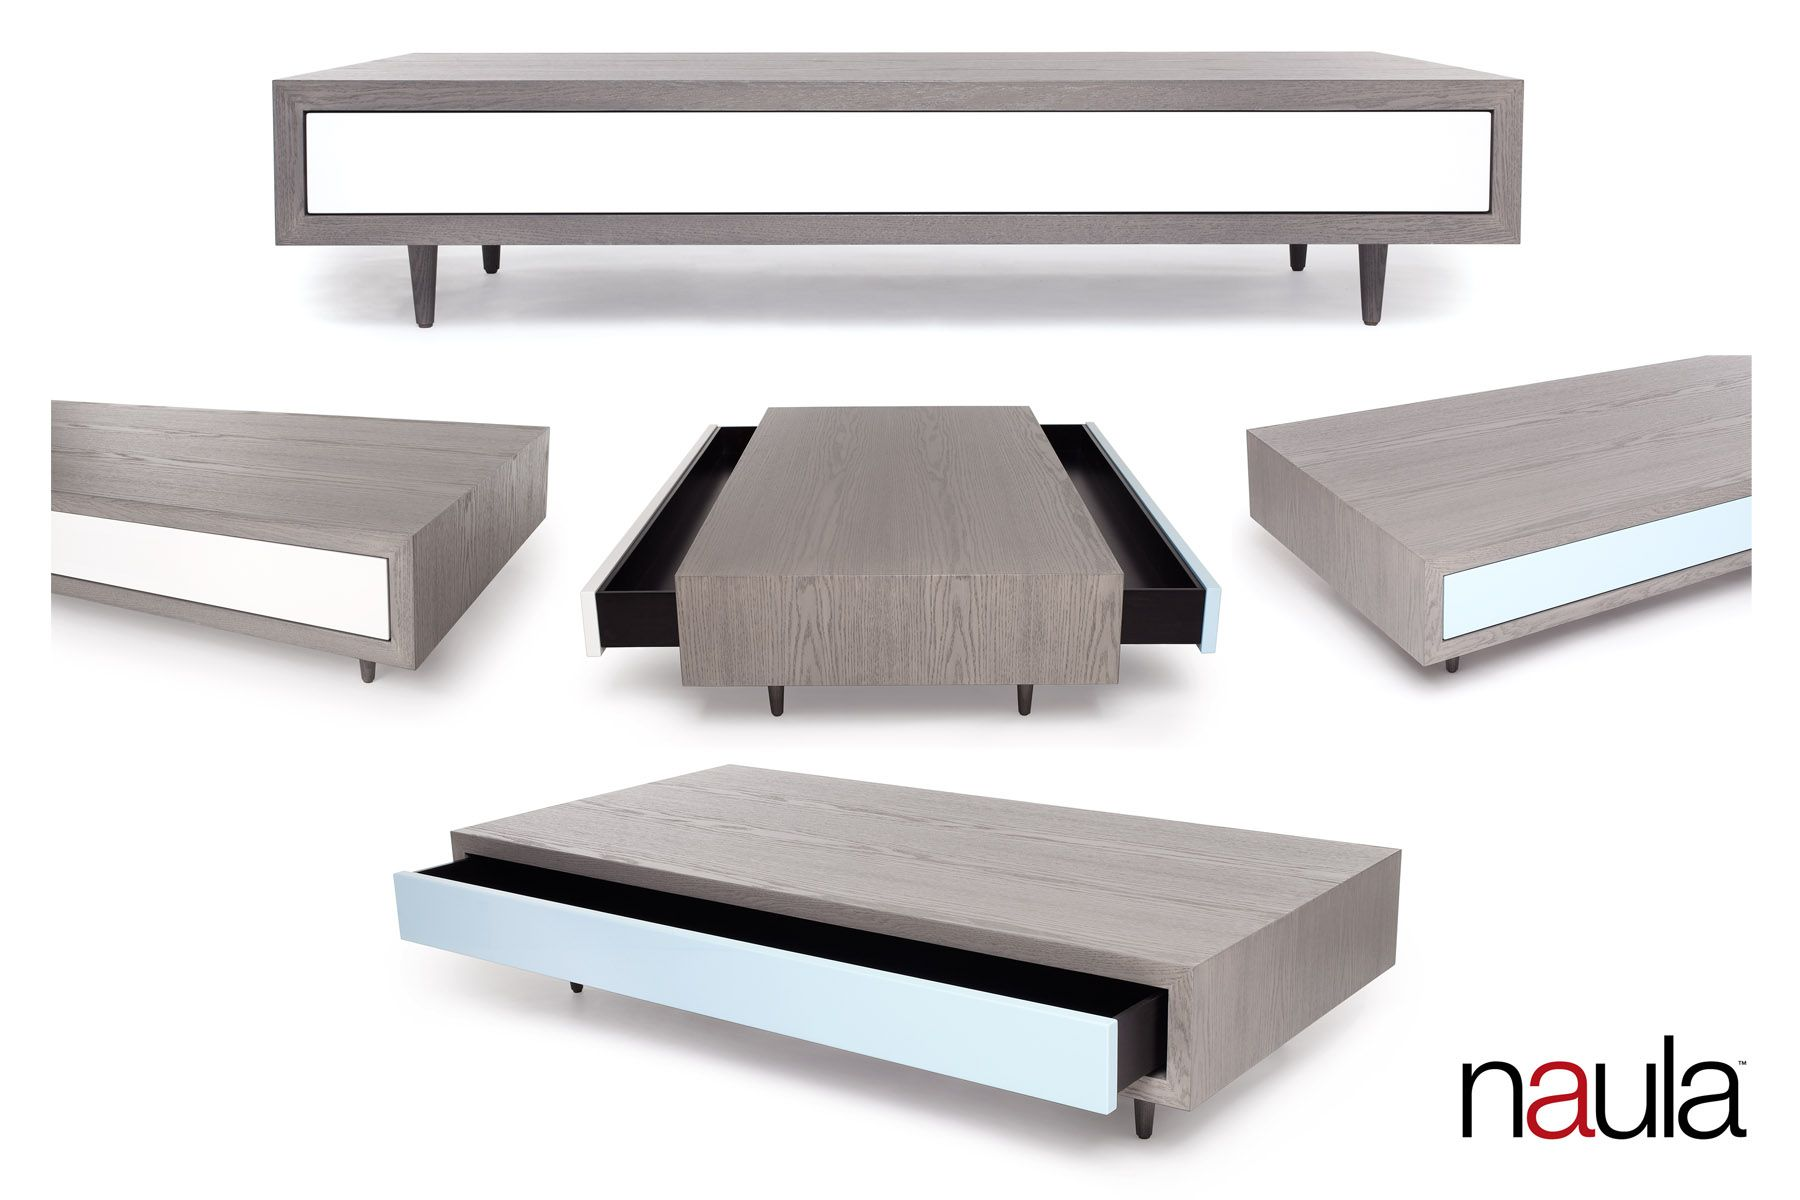 cutting edge furniture. Cutting-Edge Furniture Design :: NAULA Stash Coffee Table A Minimalist\u0027s Dream, The Was Creatively Conceived As Refined Vessel. Cutting Edge I